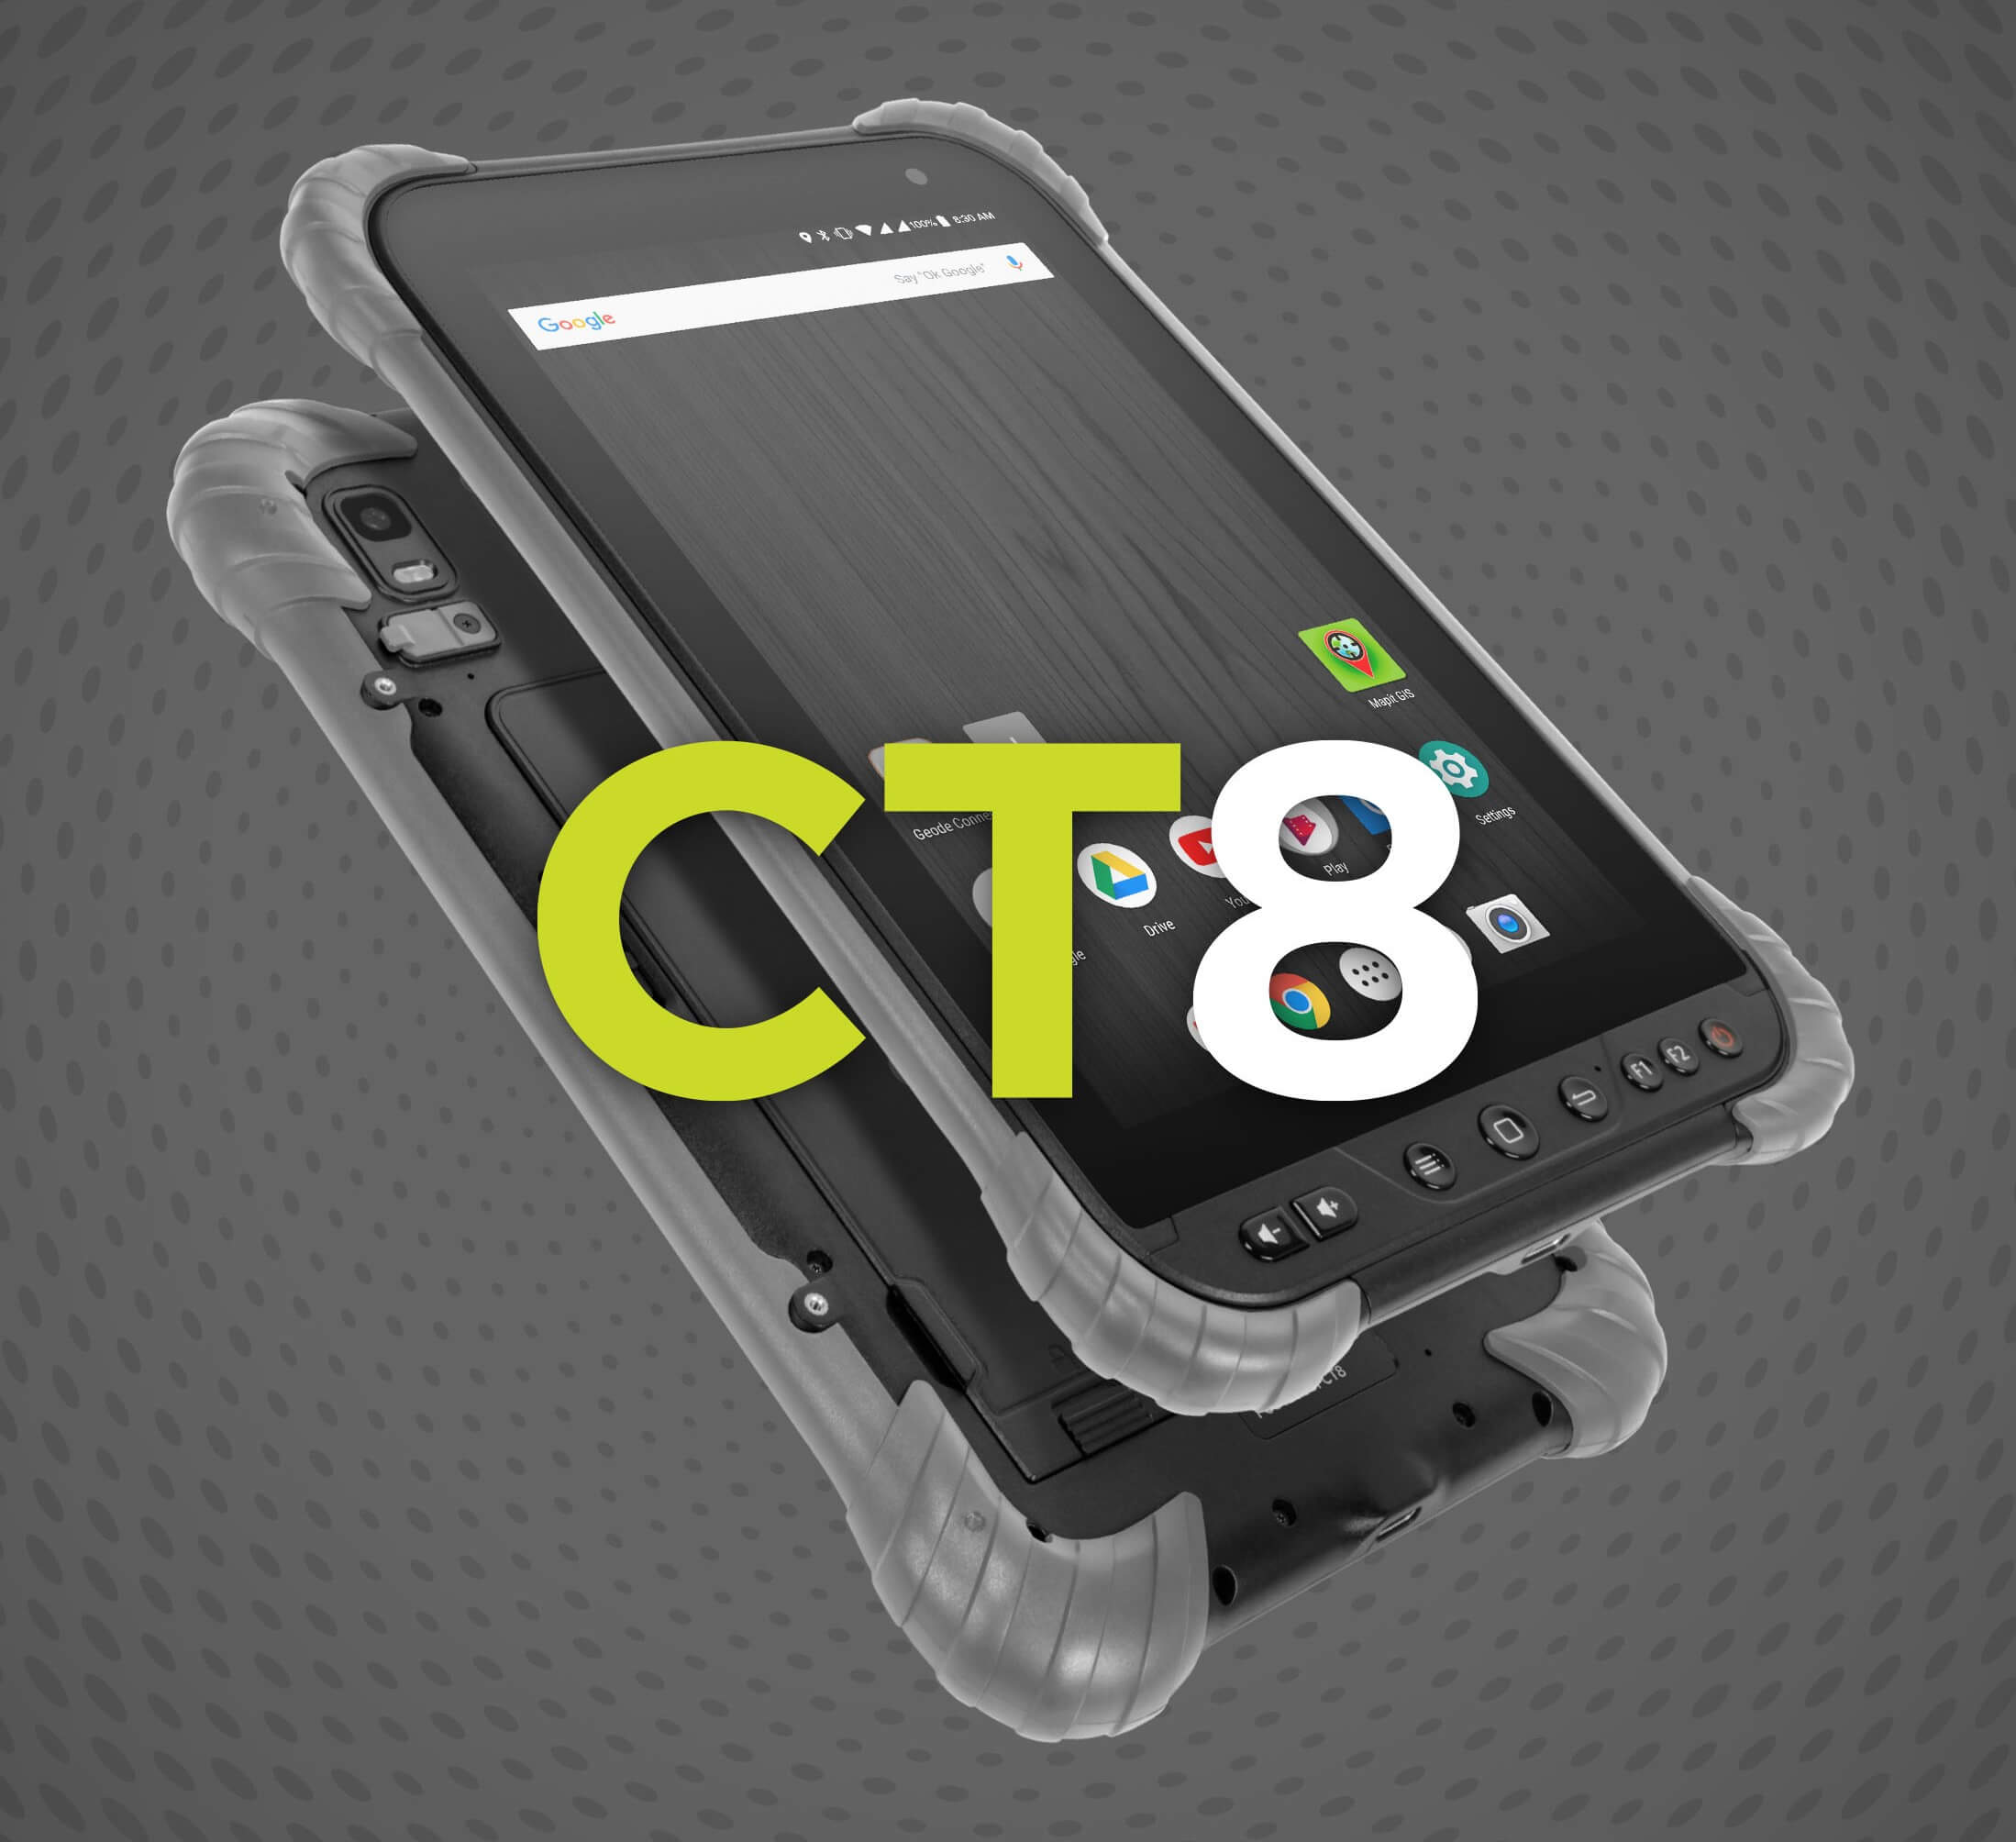 Cedar Ct8 Rugged Tablet